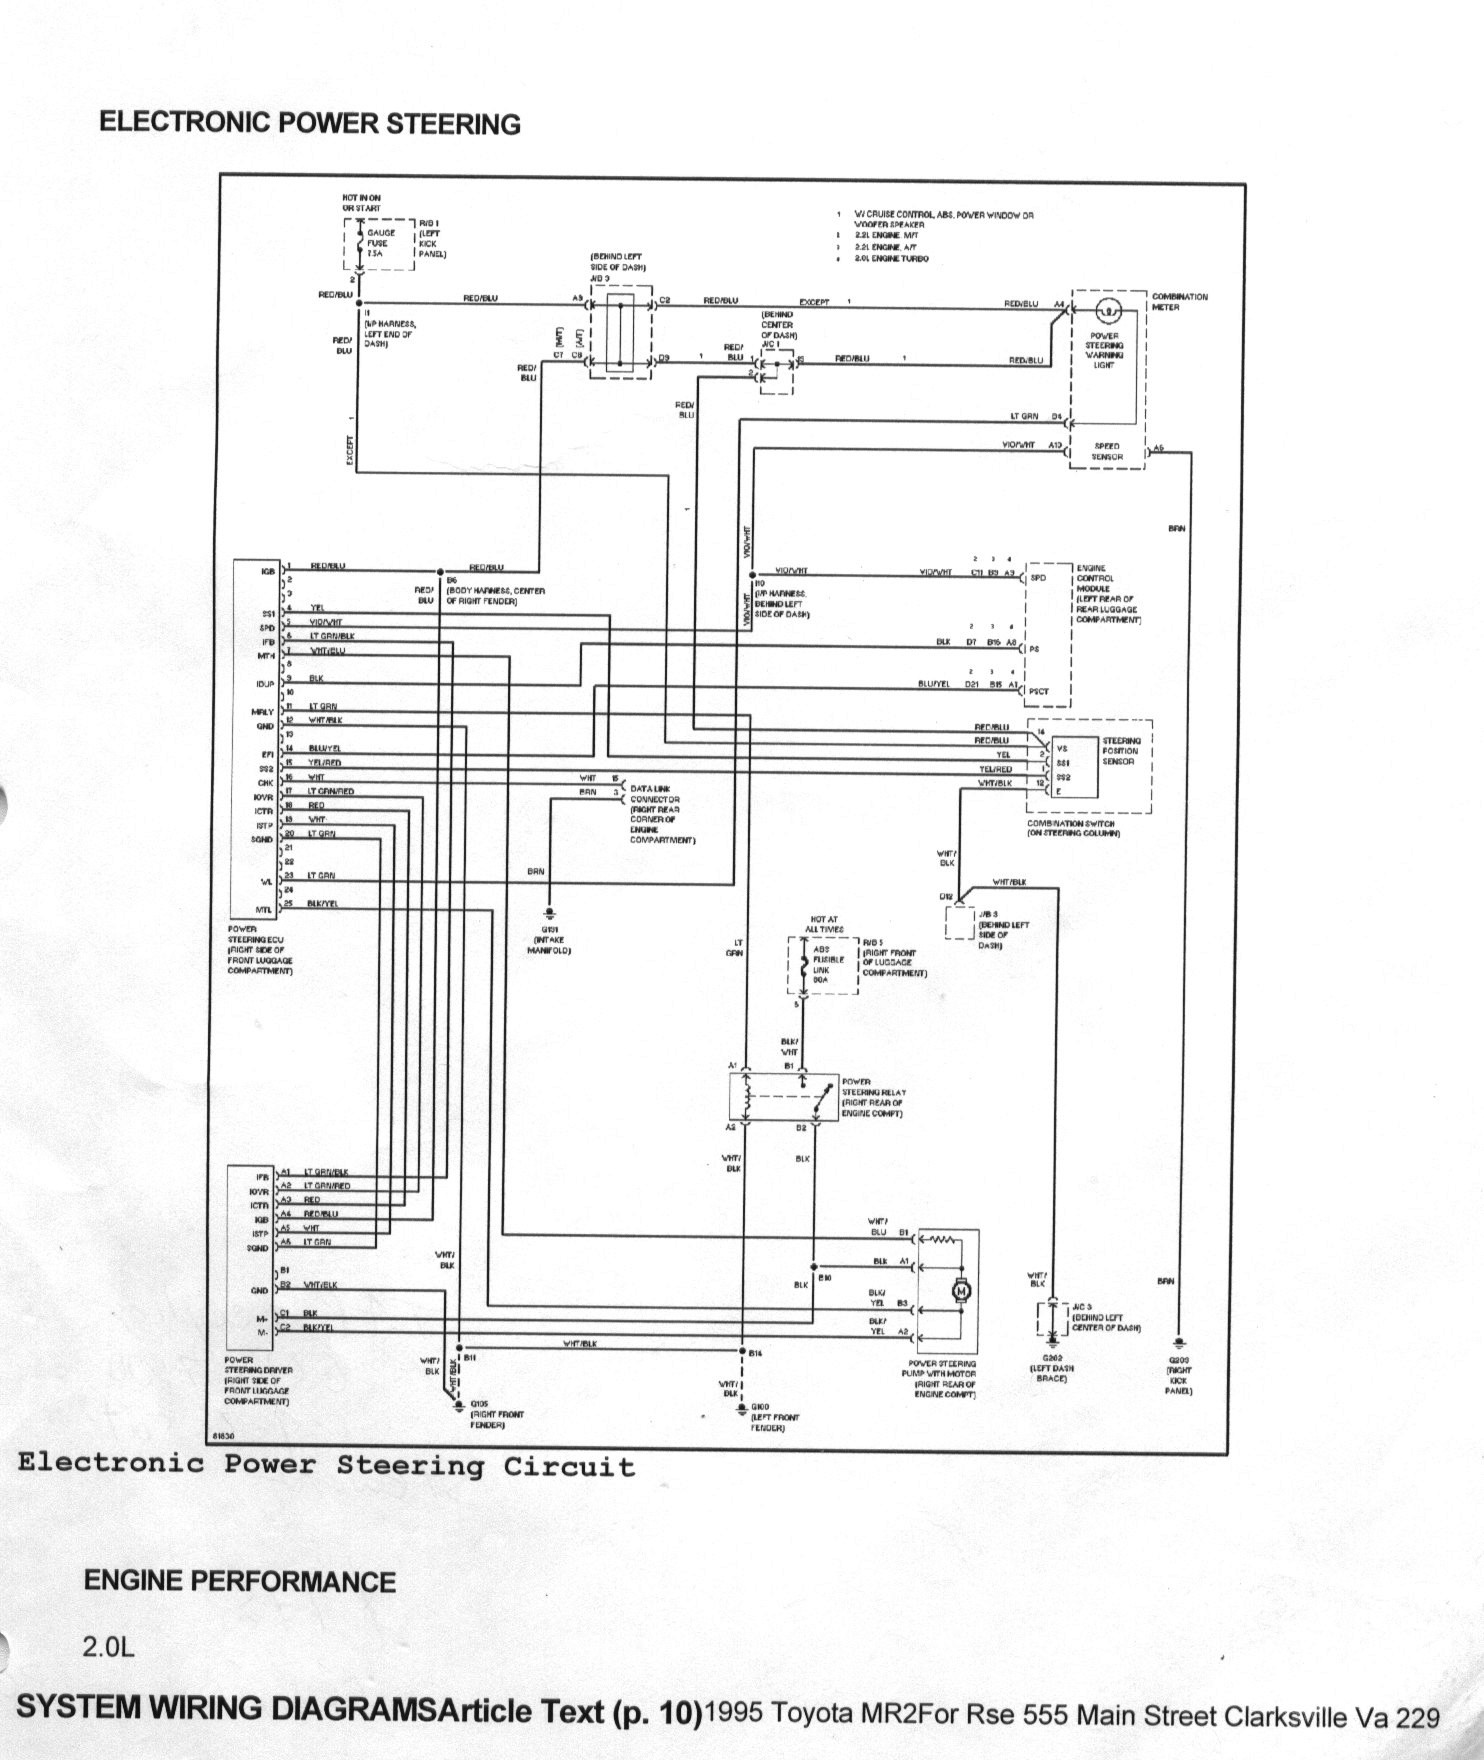 toyota mr2 alternator wiring diagram stereo harness for 1993 paseo get free image